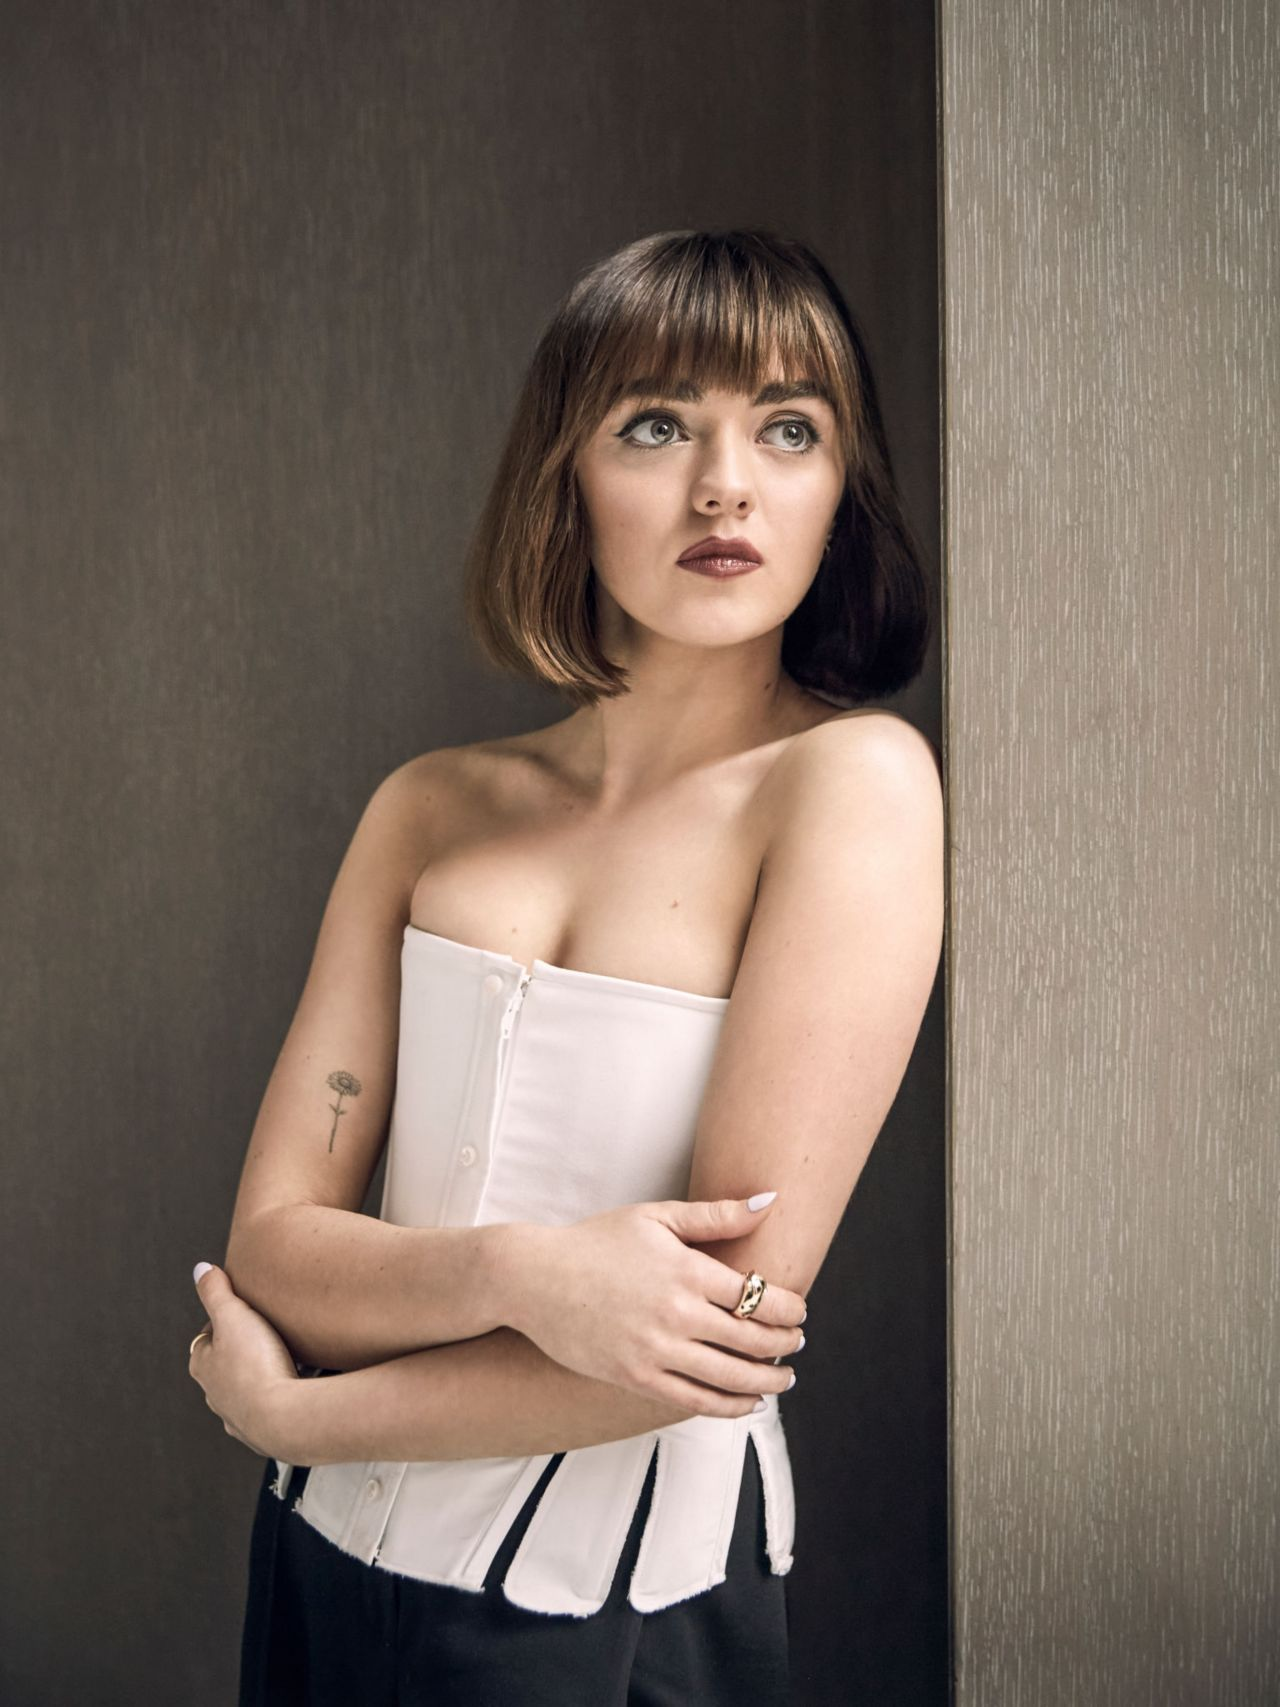 Photoshoot maisie williams From a